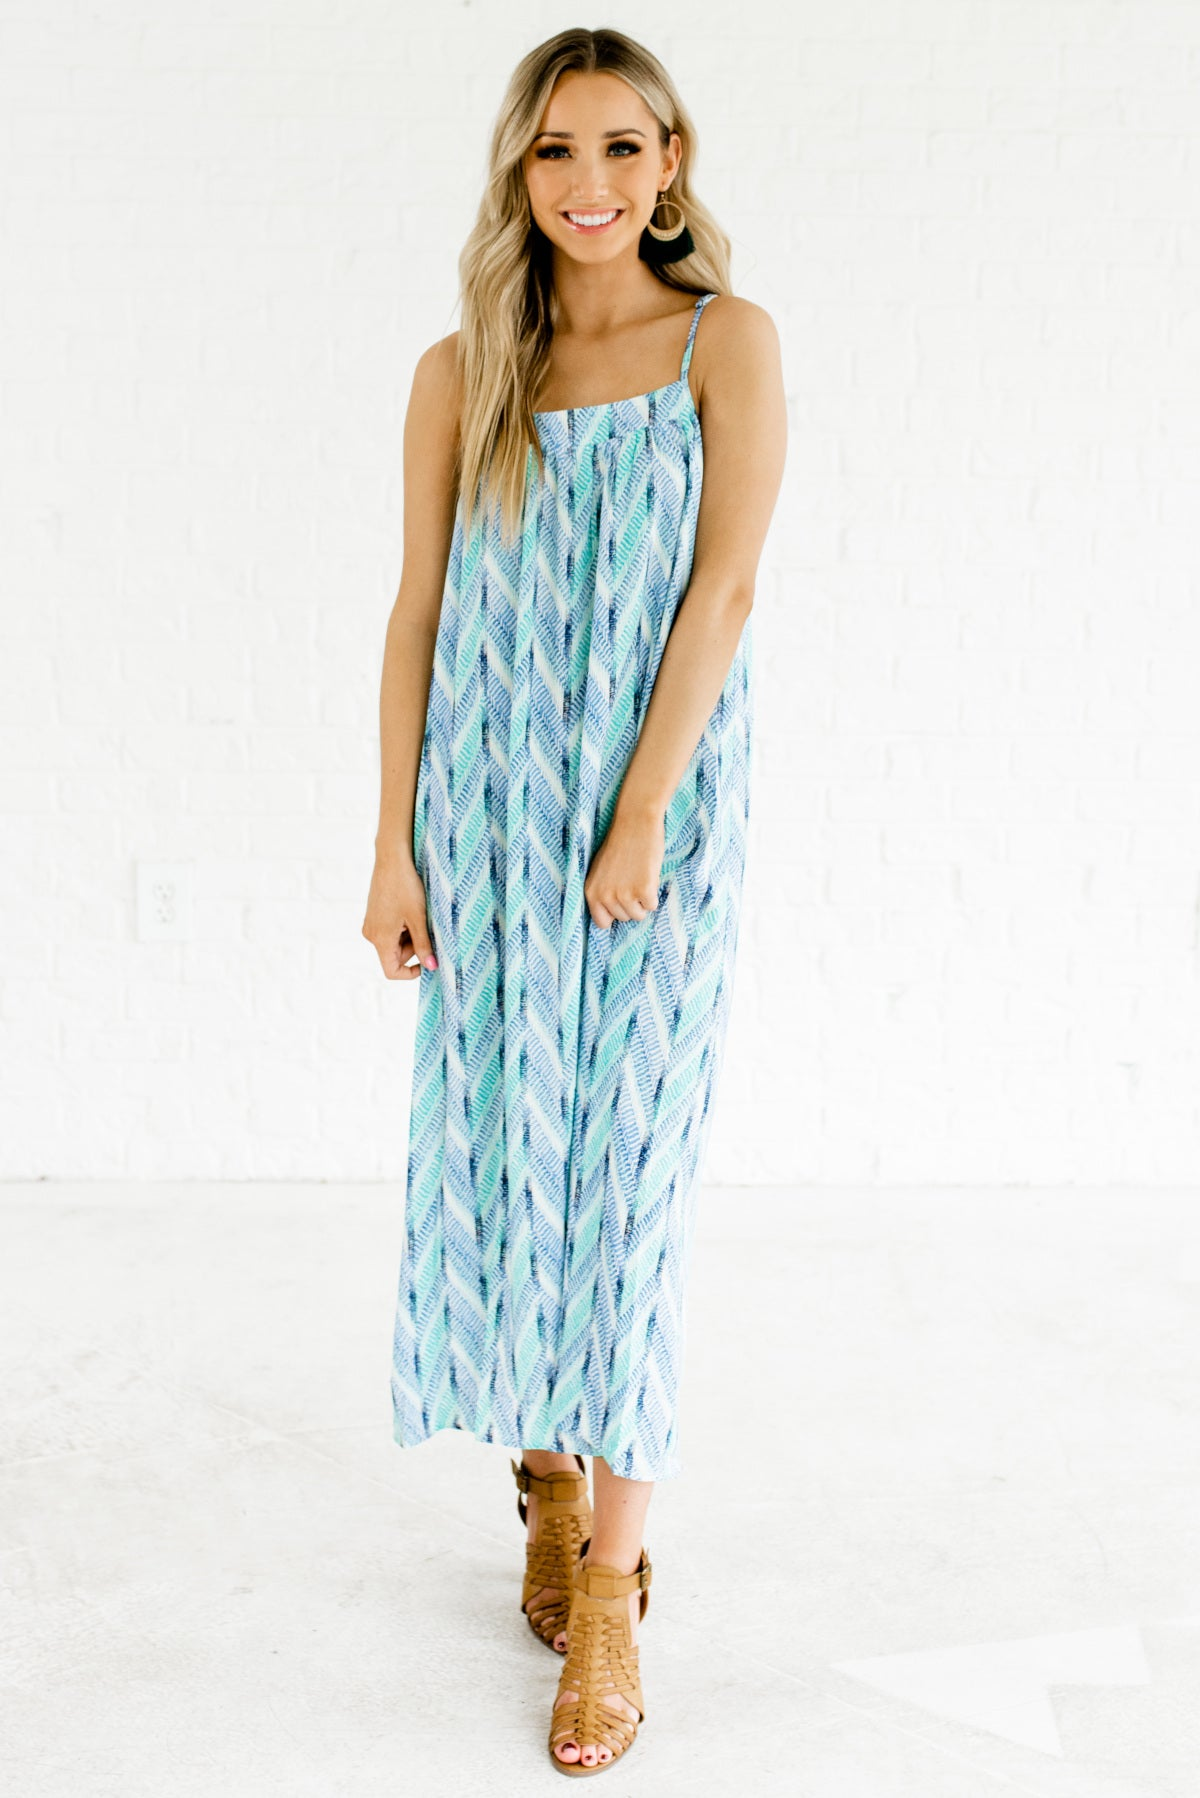 Blue, Green, and White Chevron Patterned Boutique Maxi Dresses for Women